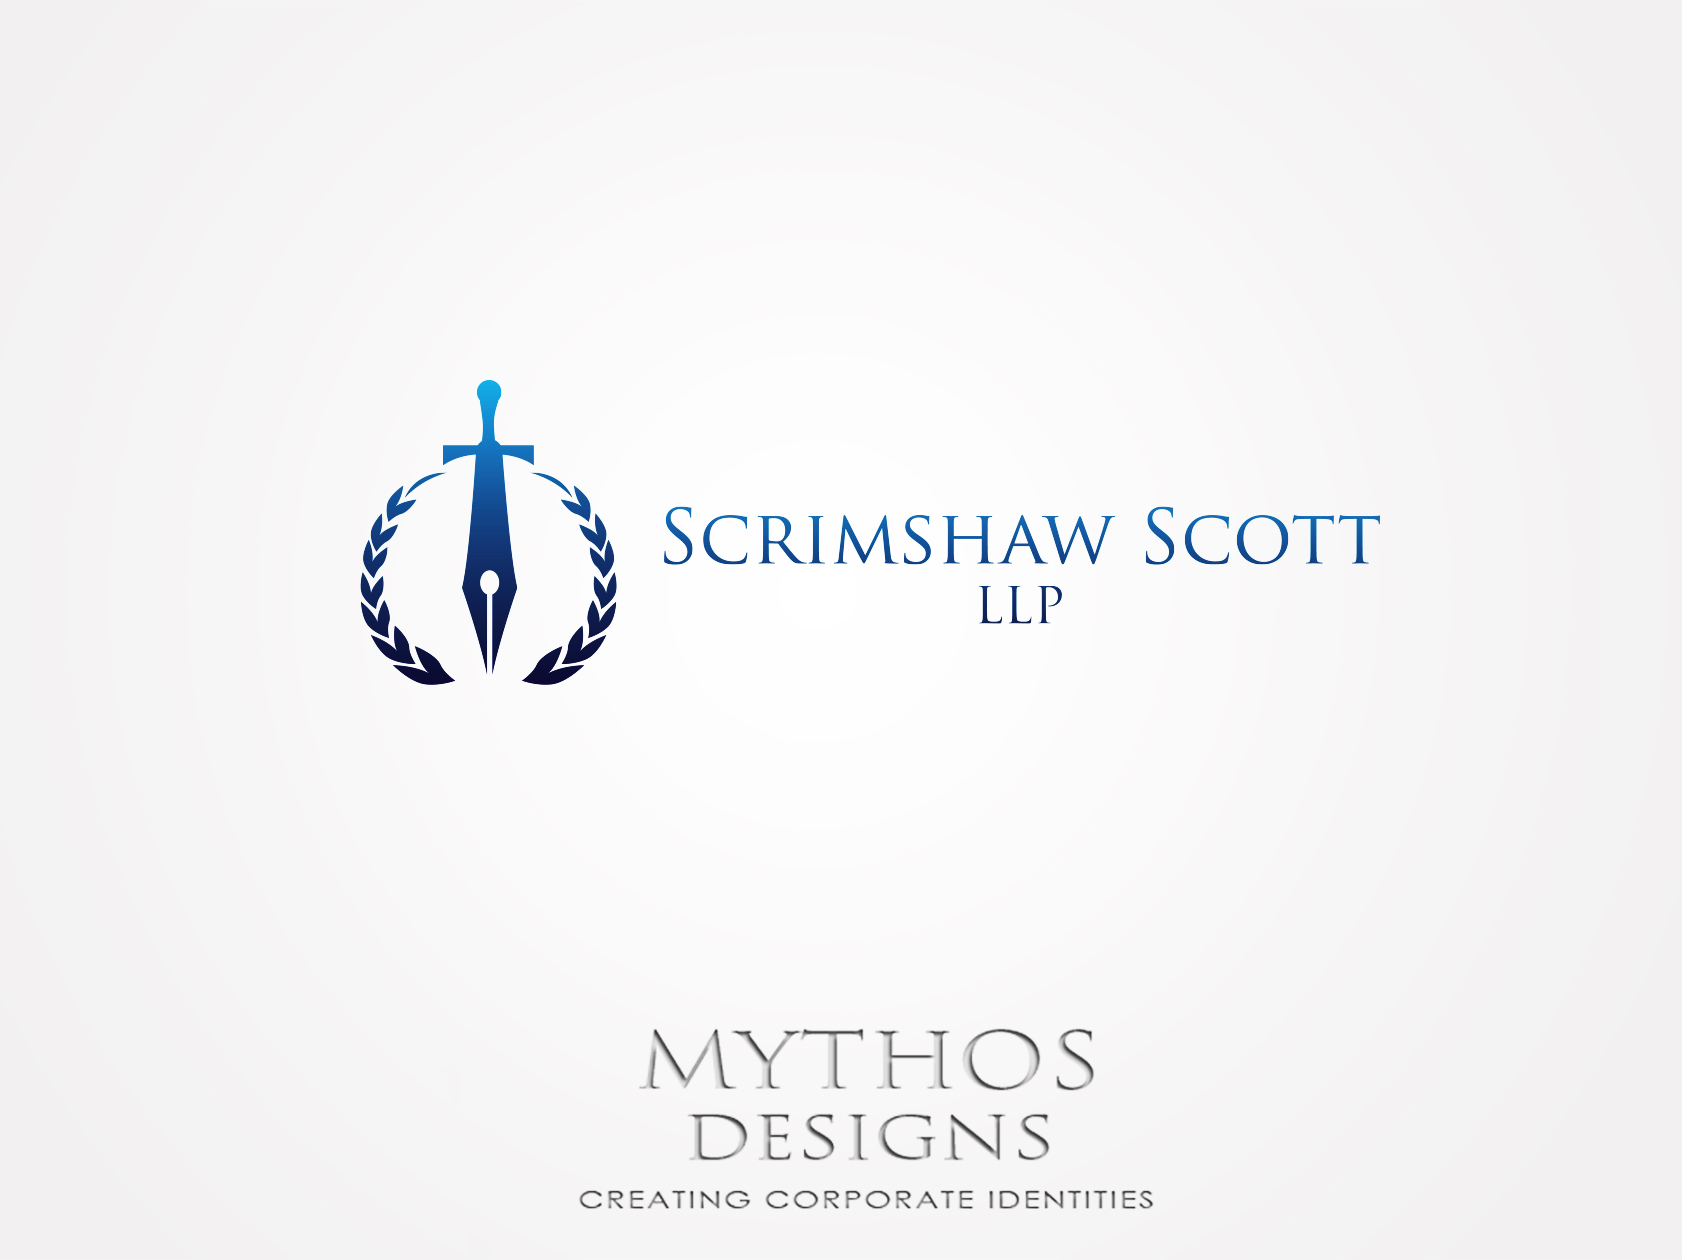 Logo Design by Mythos Designs - Entry No. 1 in the Logo Design Contest Creative Logo Design for Scrimshaw Scott LLP.